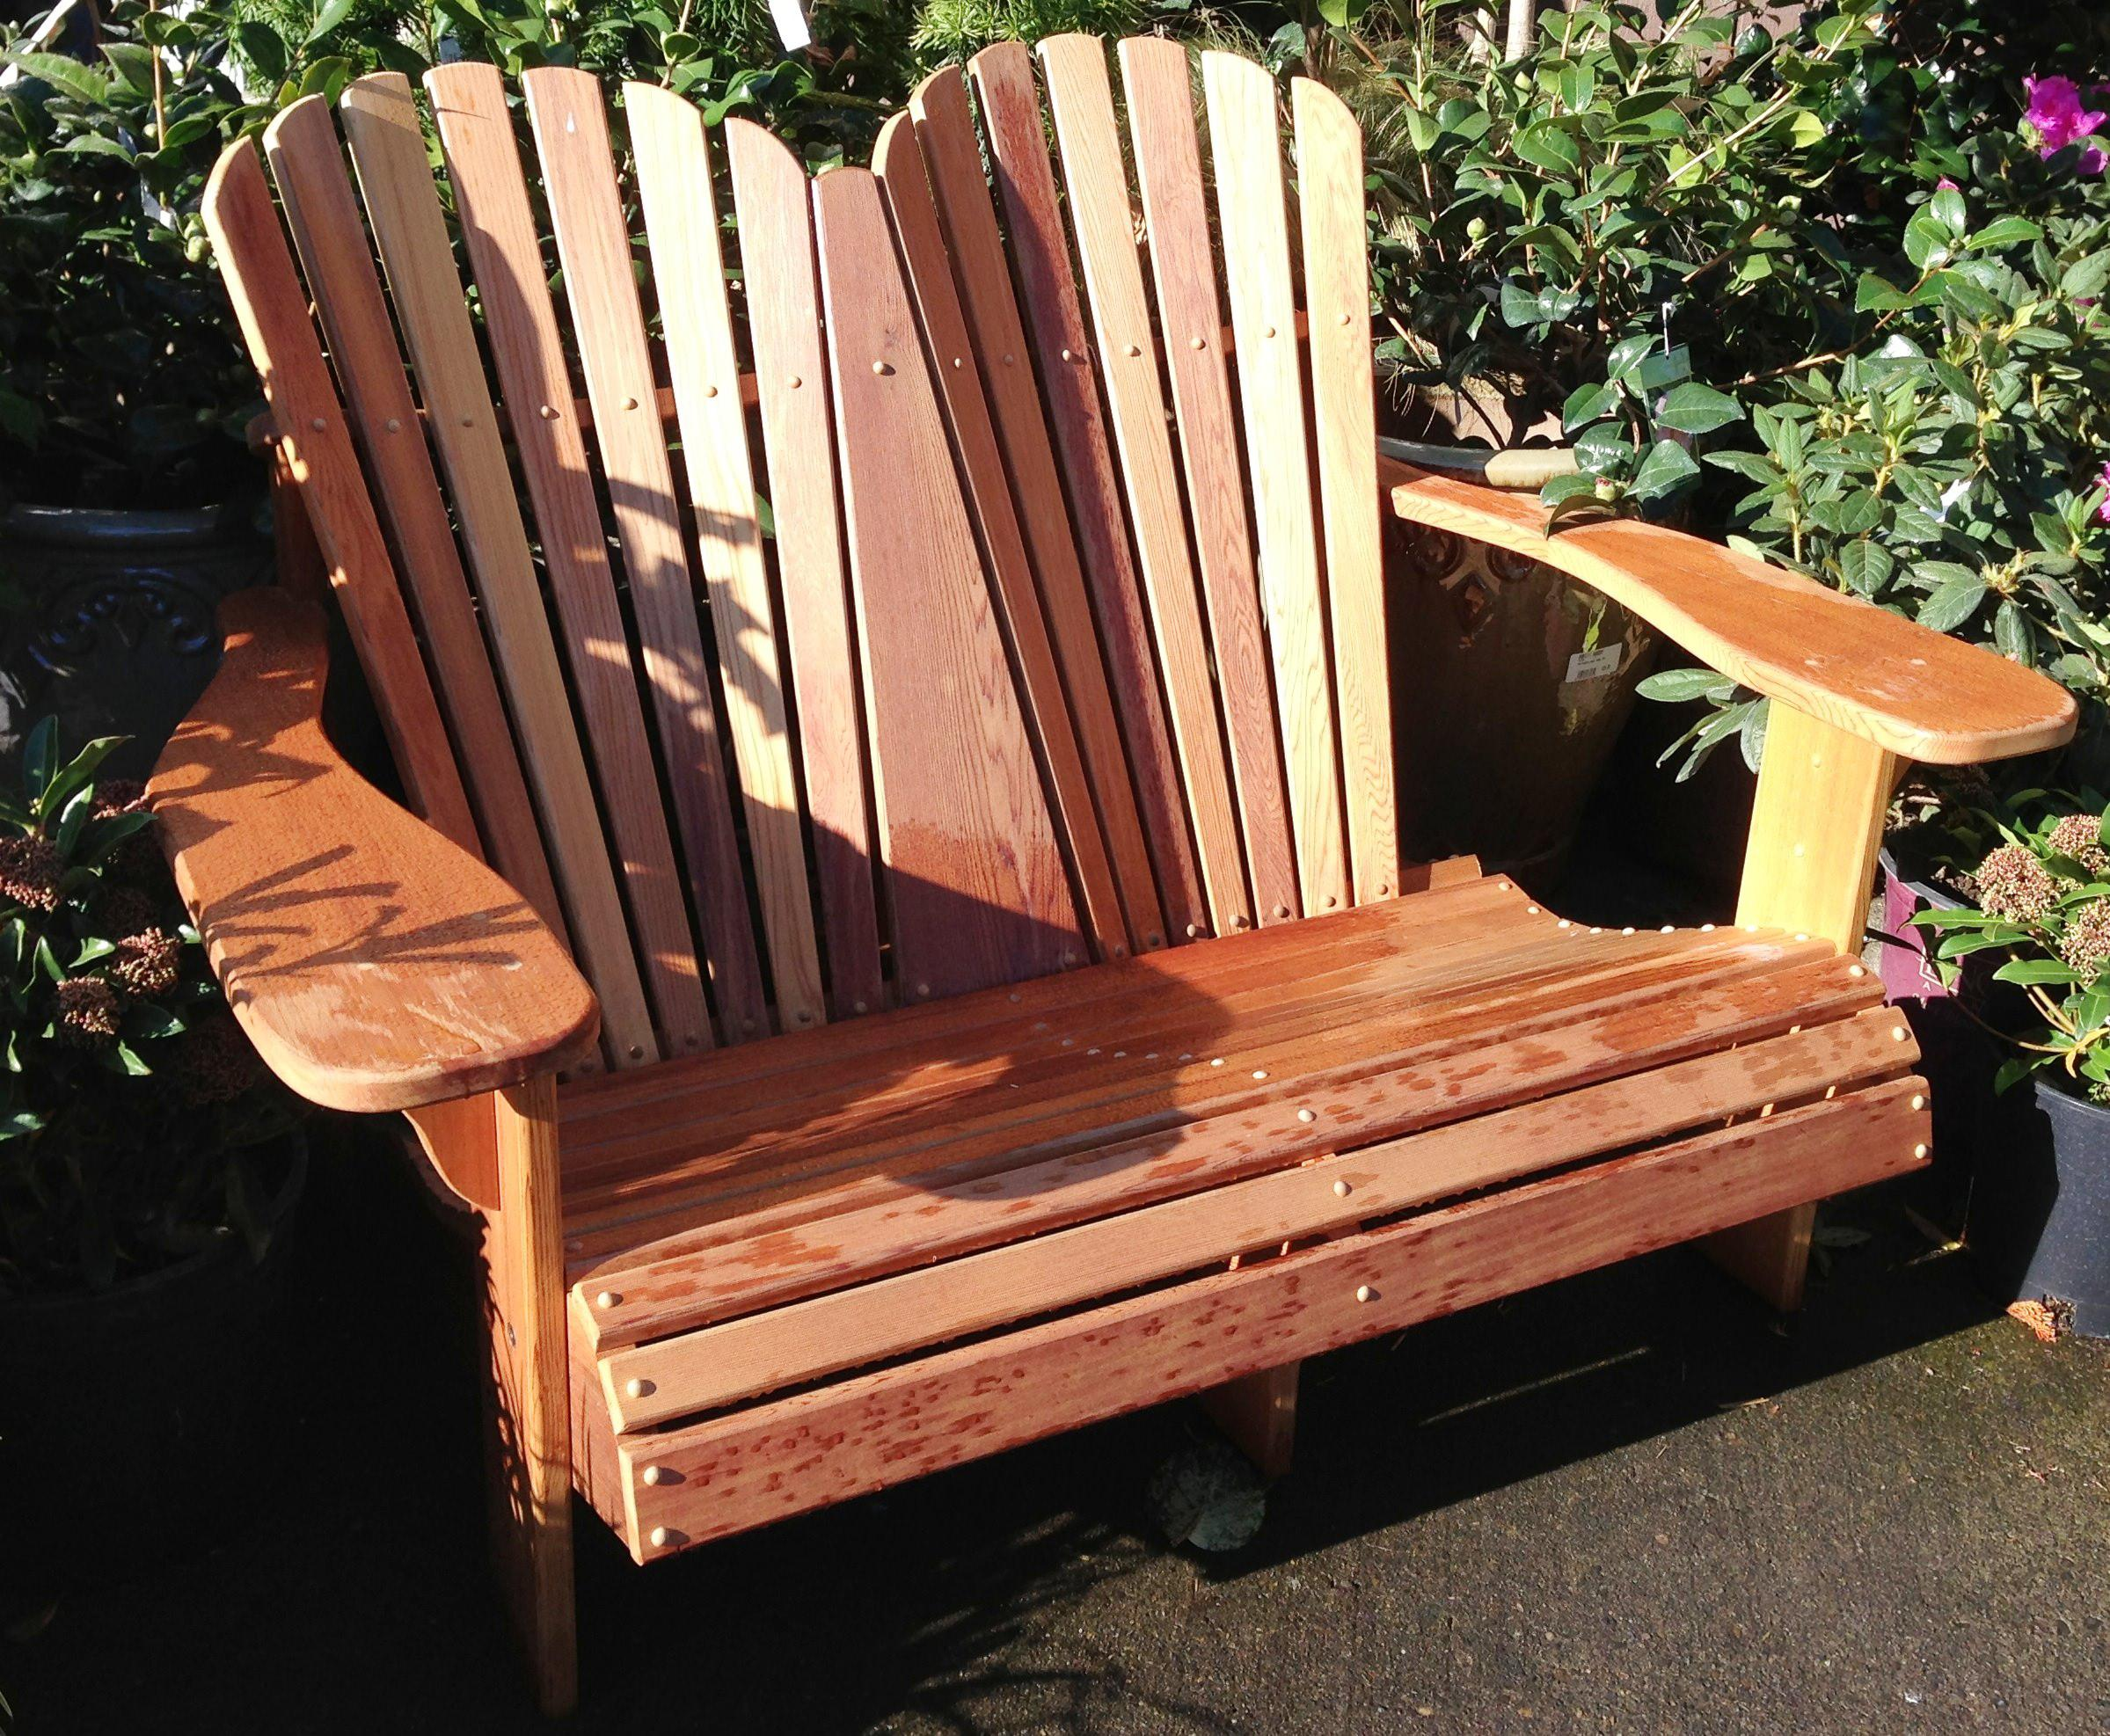 The Unique Teak Adirondack Chairs For Outdoor Furniture ideas